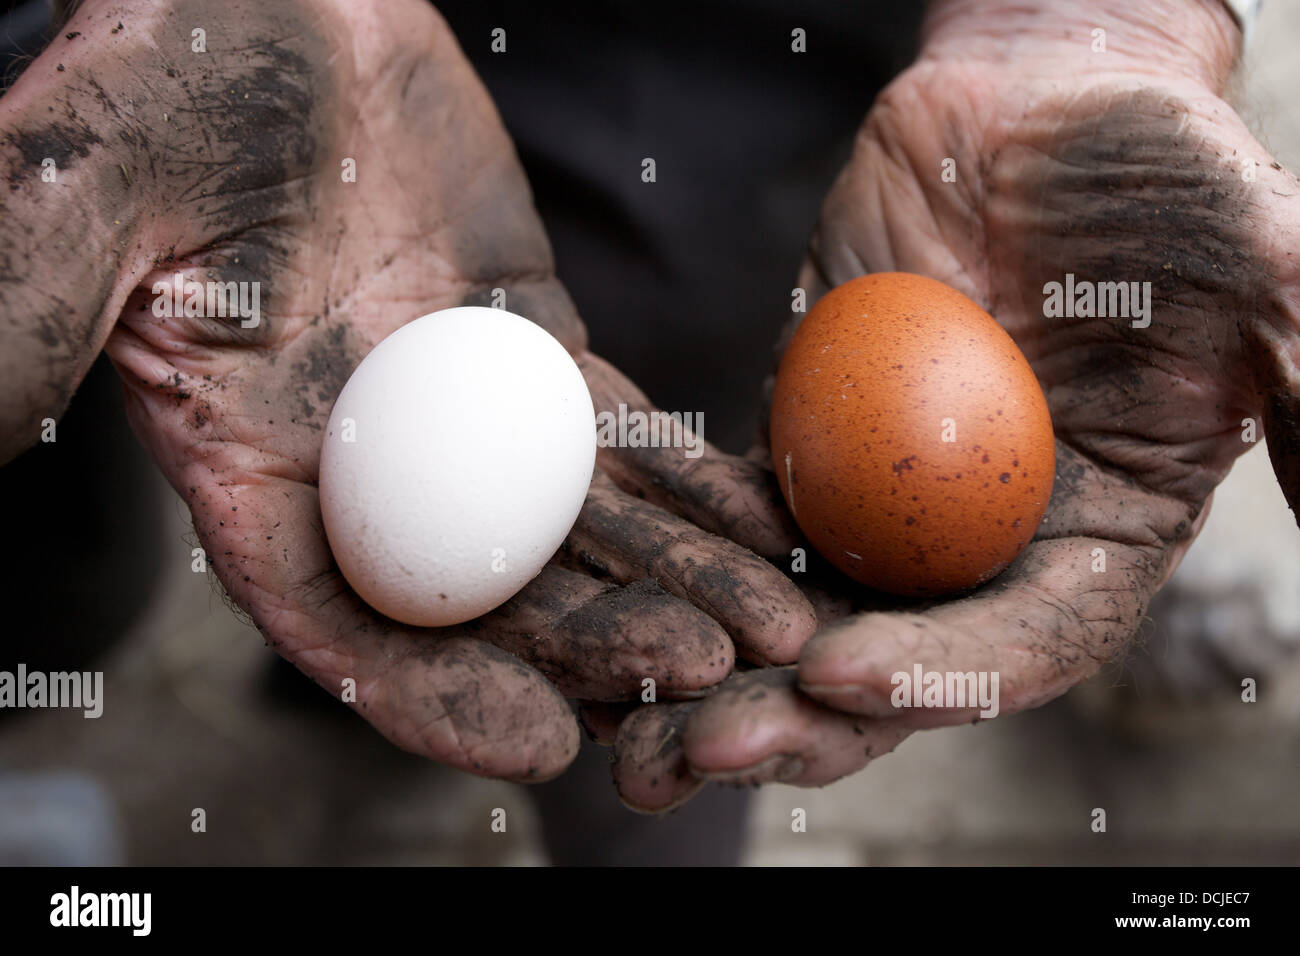 Freshly laid eggs held in a mans hands - Stock Image